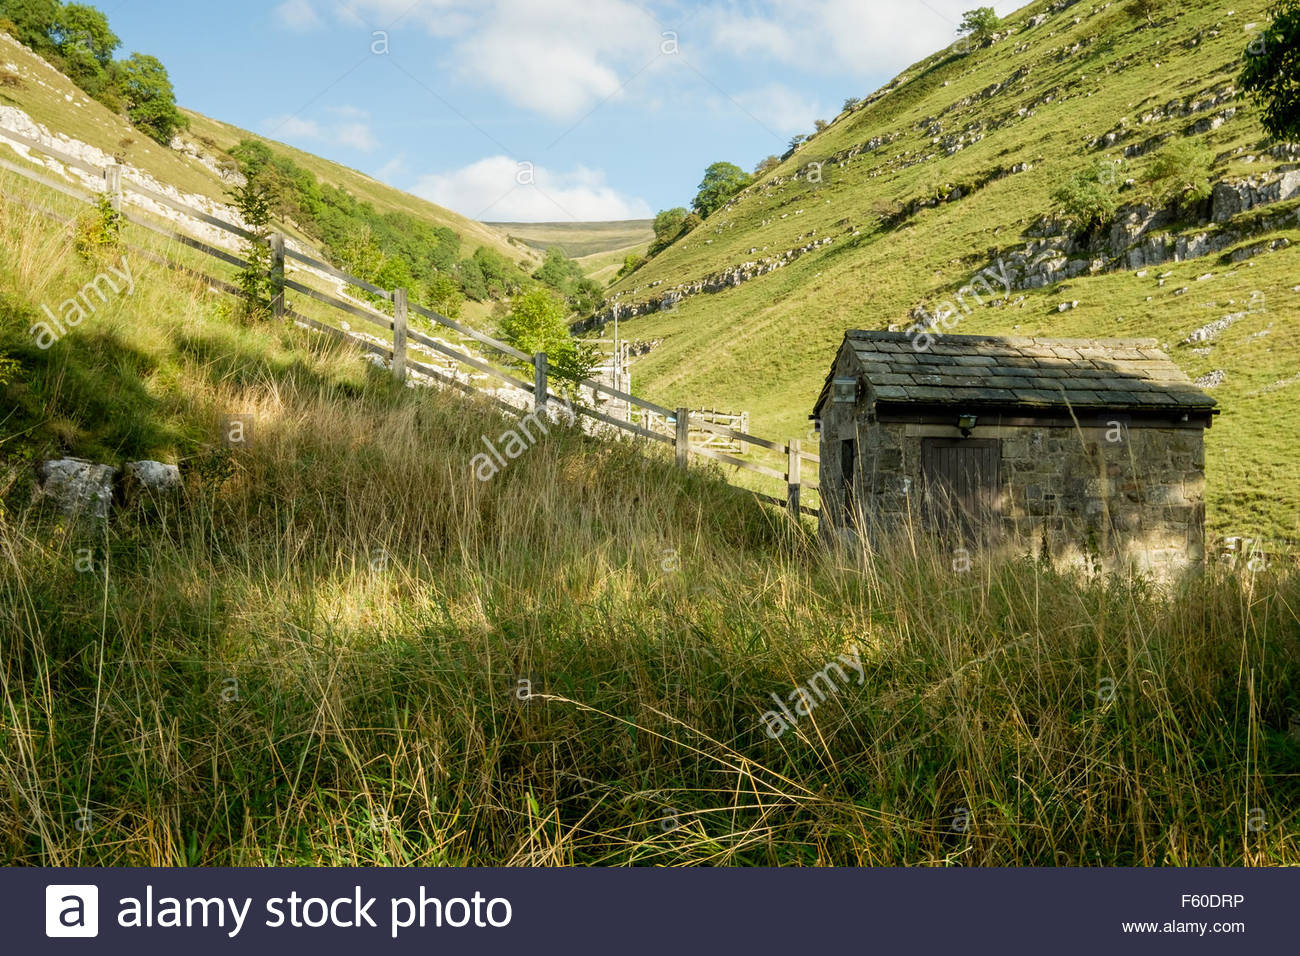 Yorkshire Water property next to Buckden Beck stream above village of Buckden, Wharfdale in the Yorkshire Dales, - Stock Image